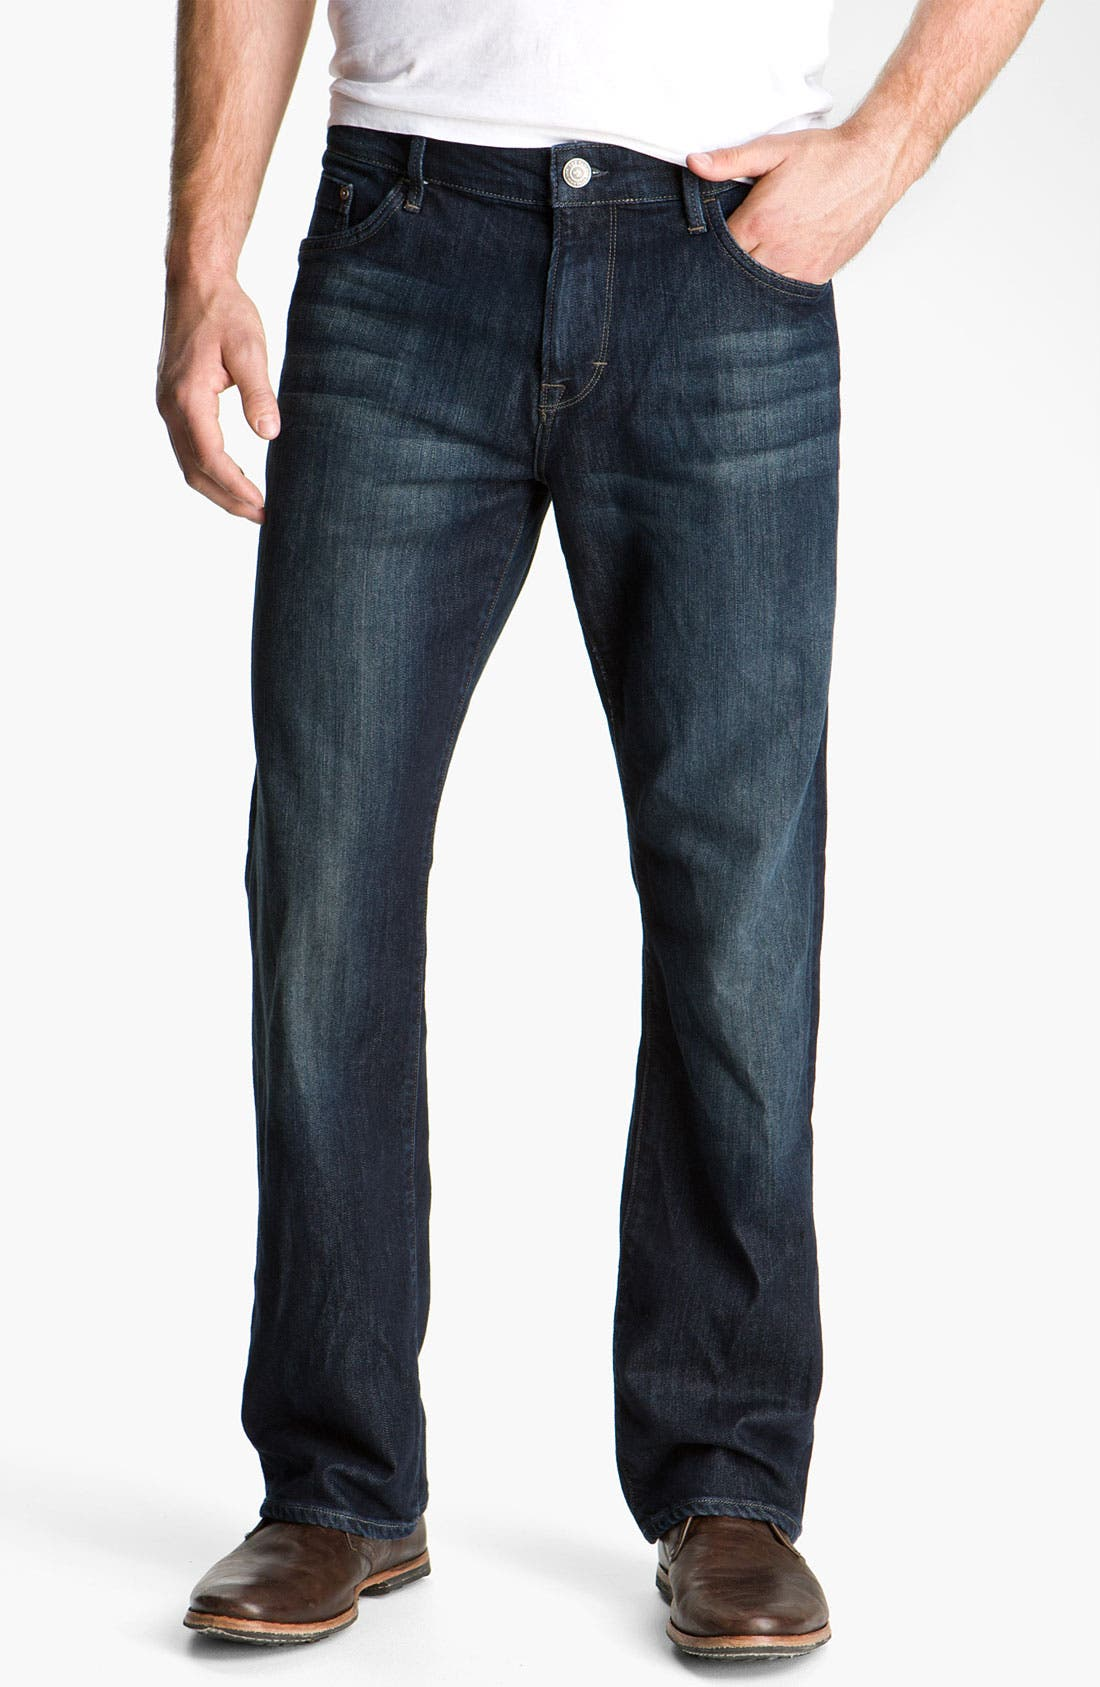 MAVI JEANS, 'Matt' Relaxed Fit Jeans, Main thumbnail 1, color, DEEP STANFORD COMFORT